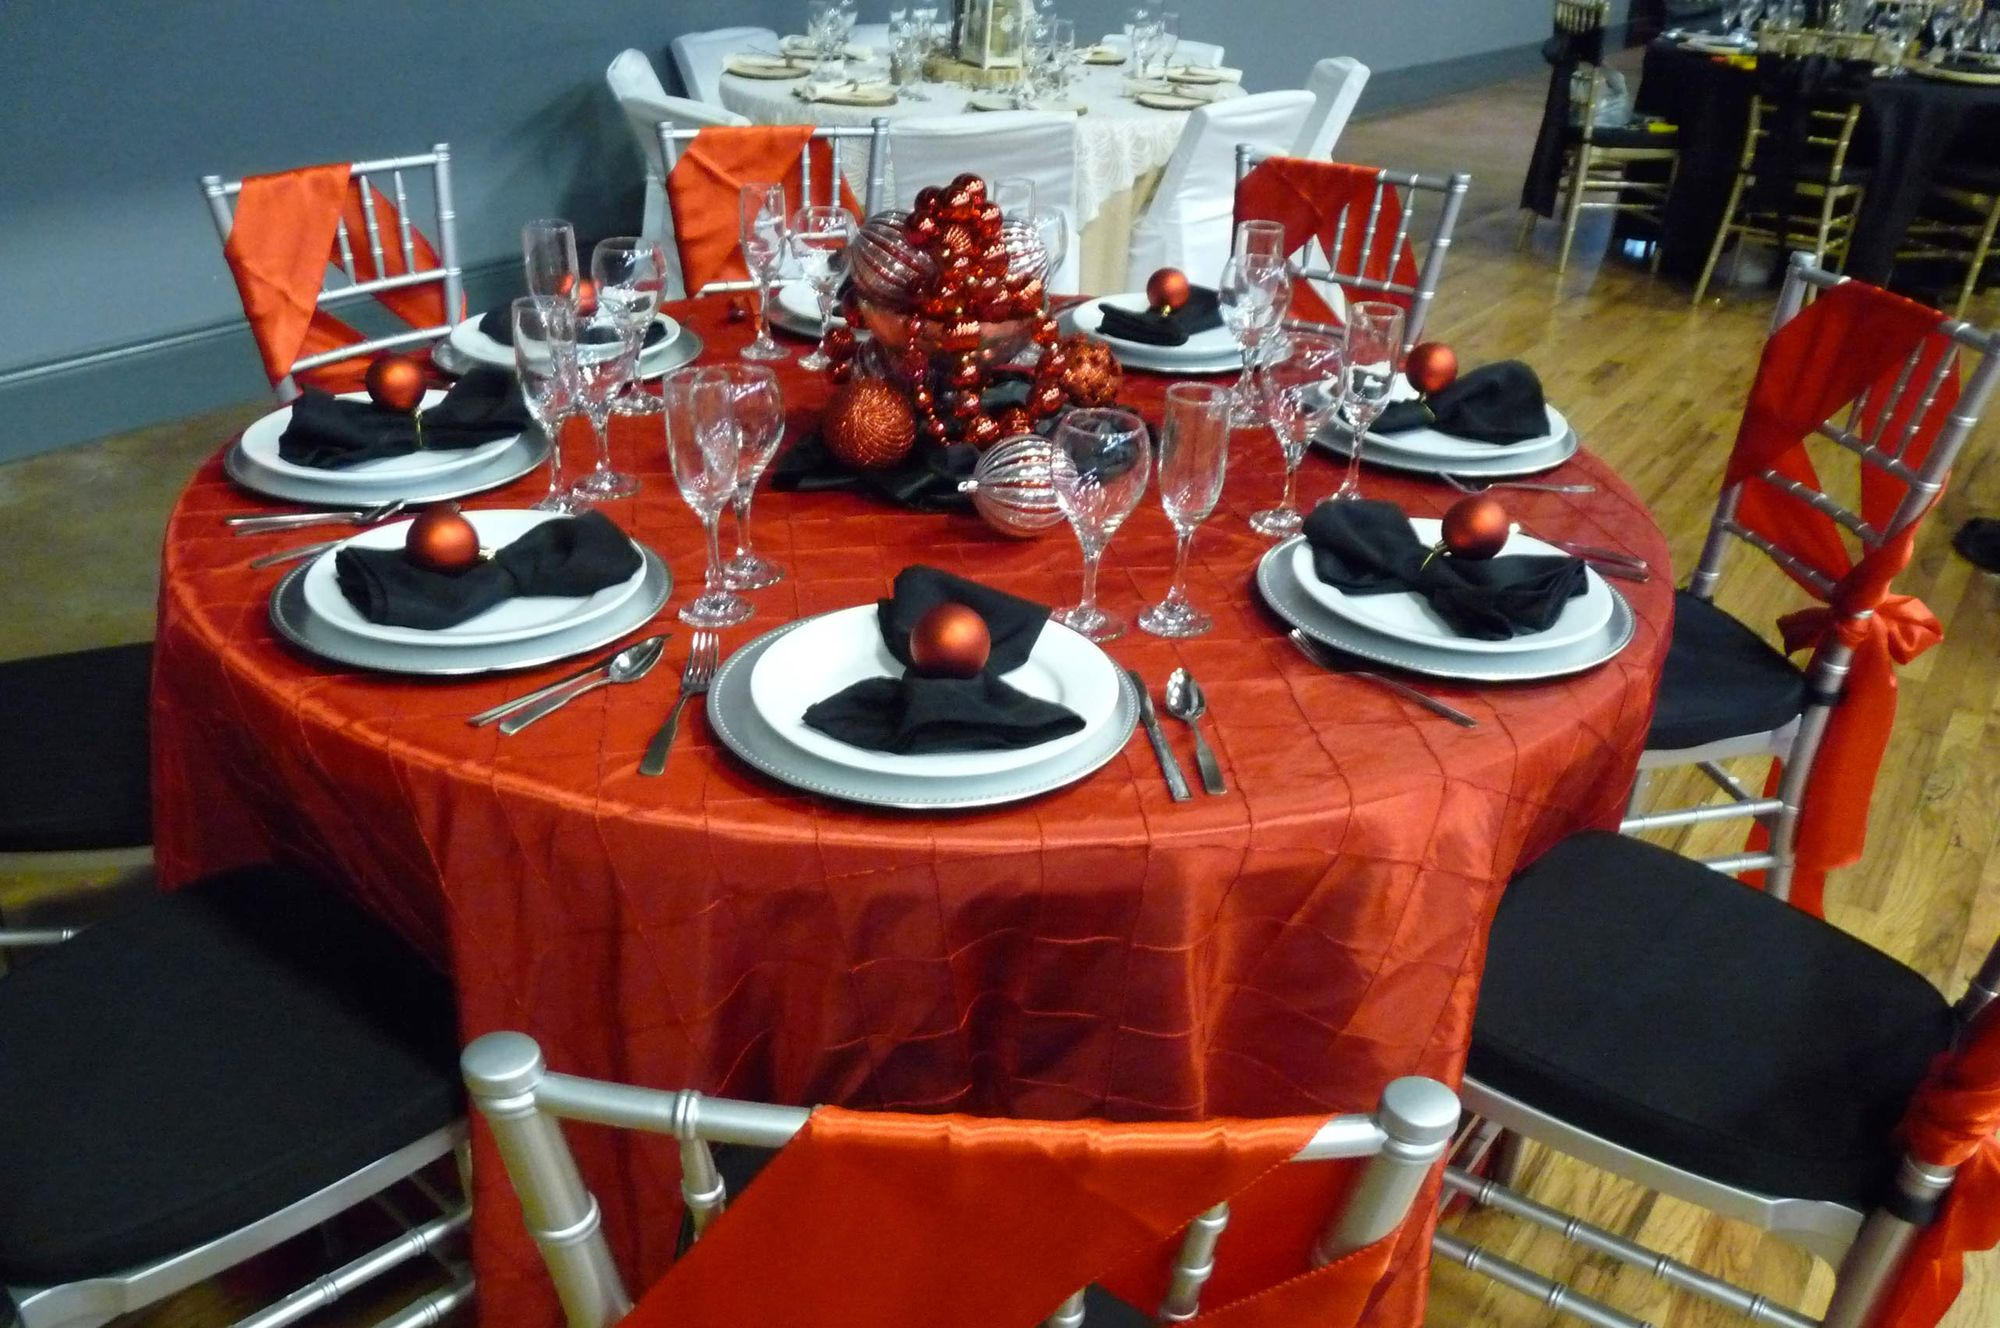 Infinity_Event_Corporate_Holiday_Parties_Christmas_Table_Decor_1.jpg